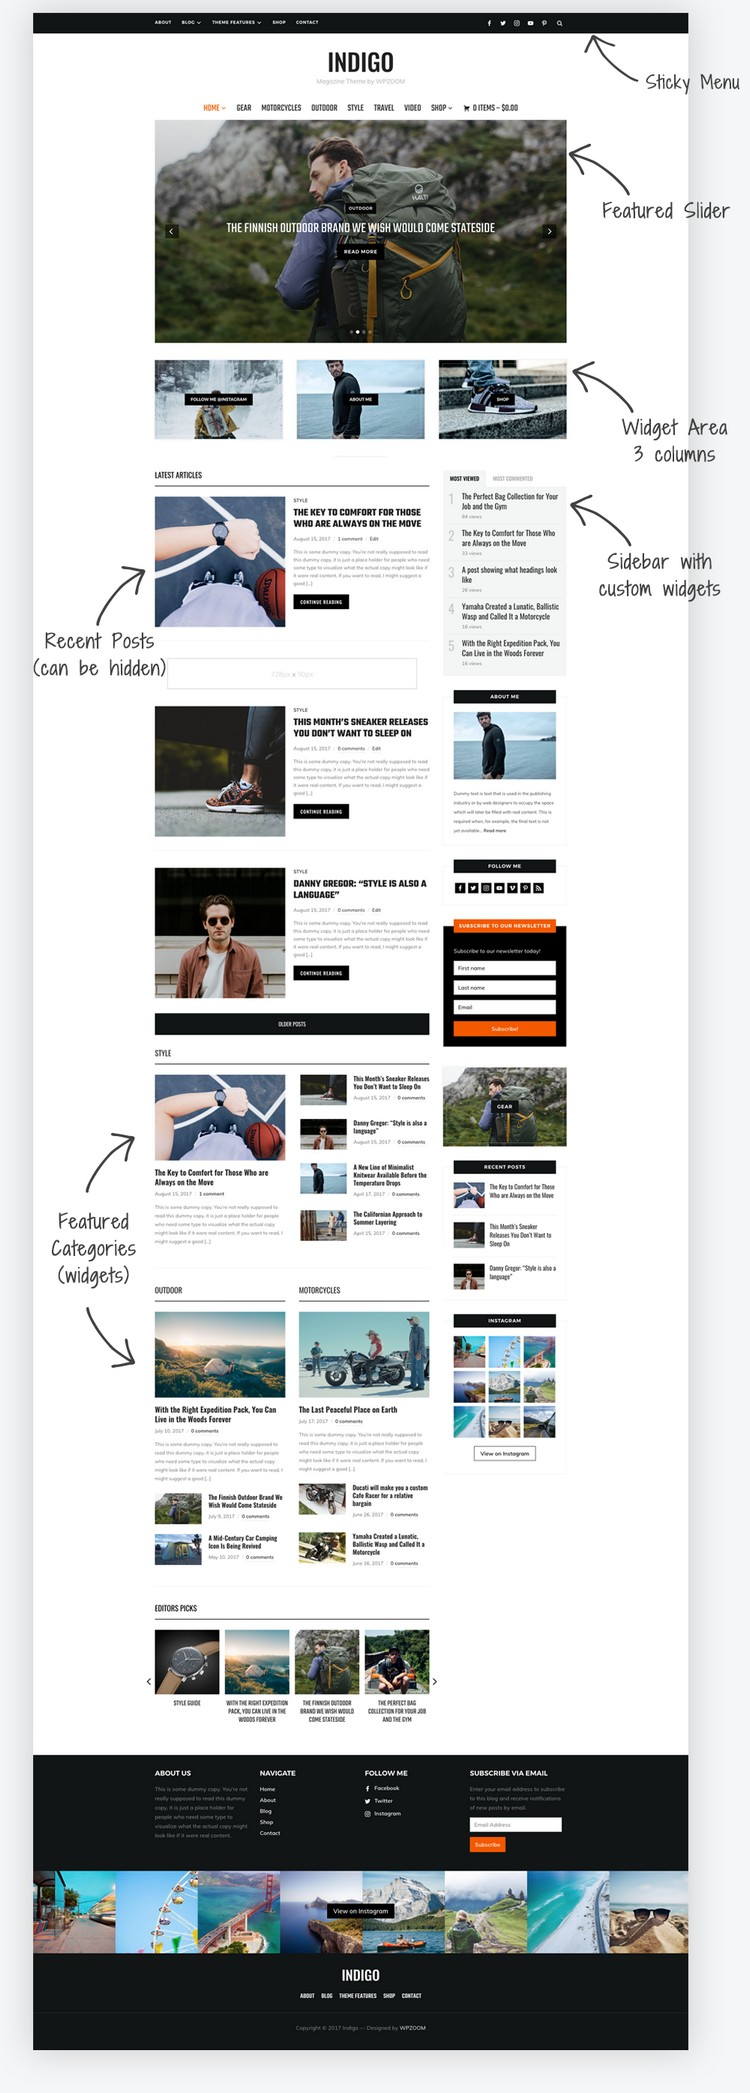 Indigo - A WordPress Theme for Magazines and Blogs